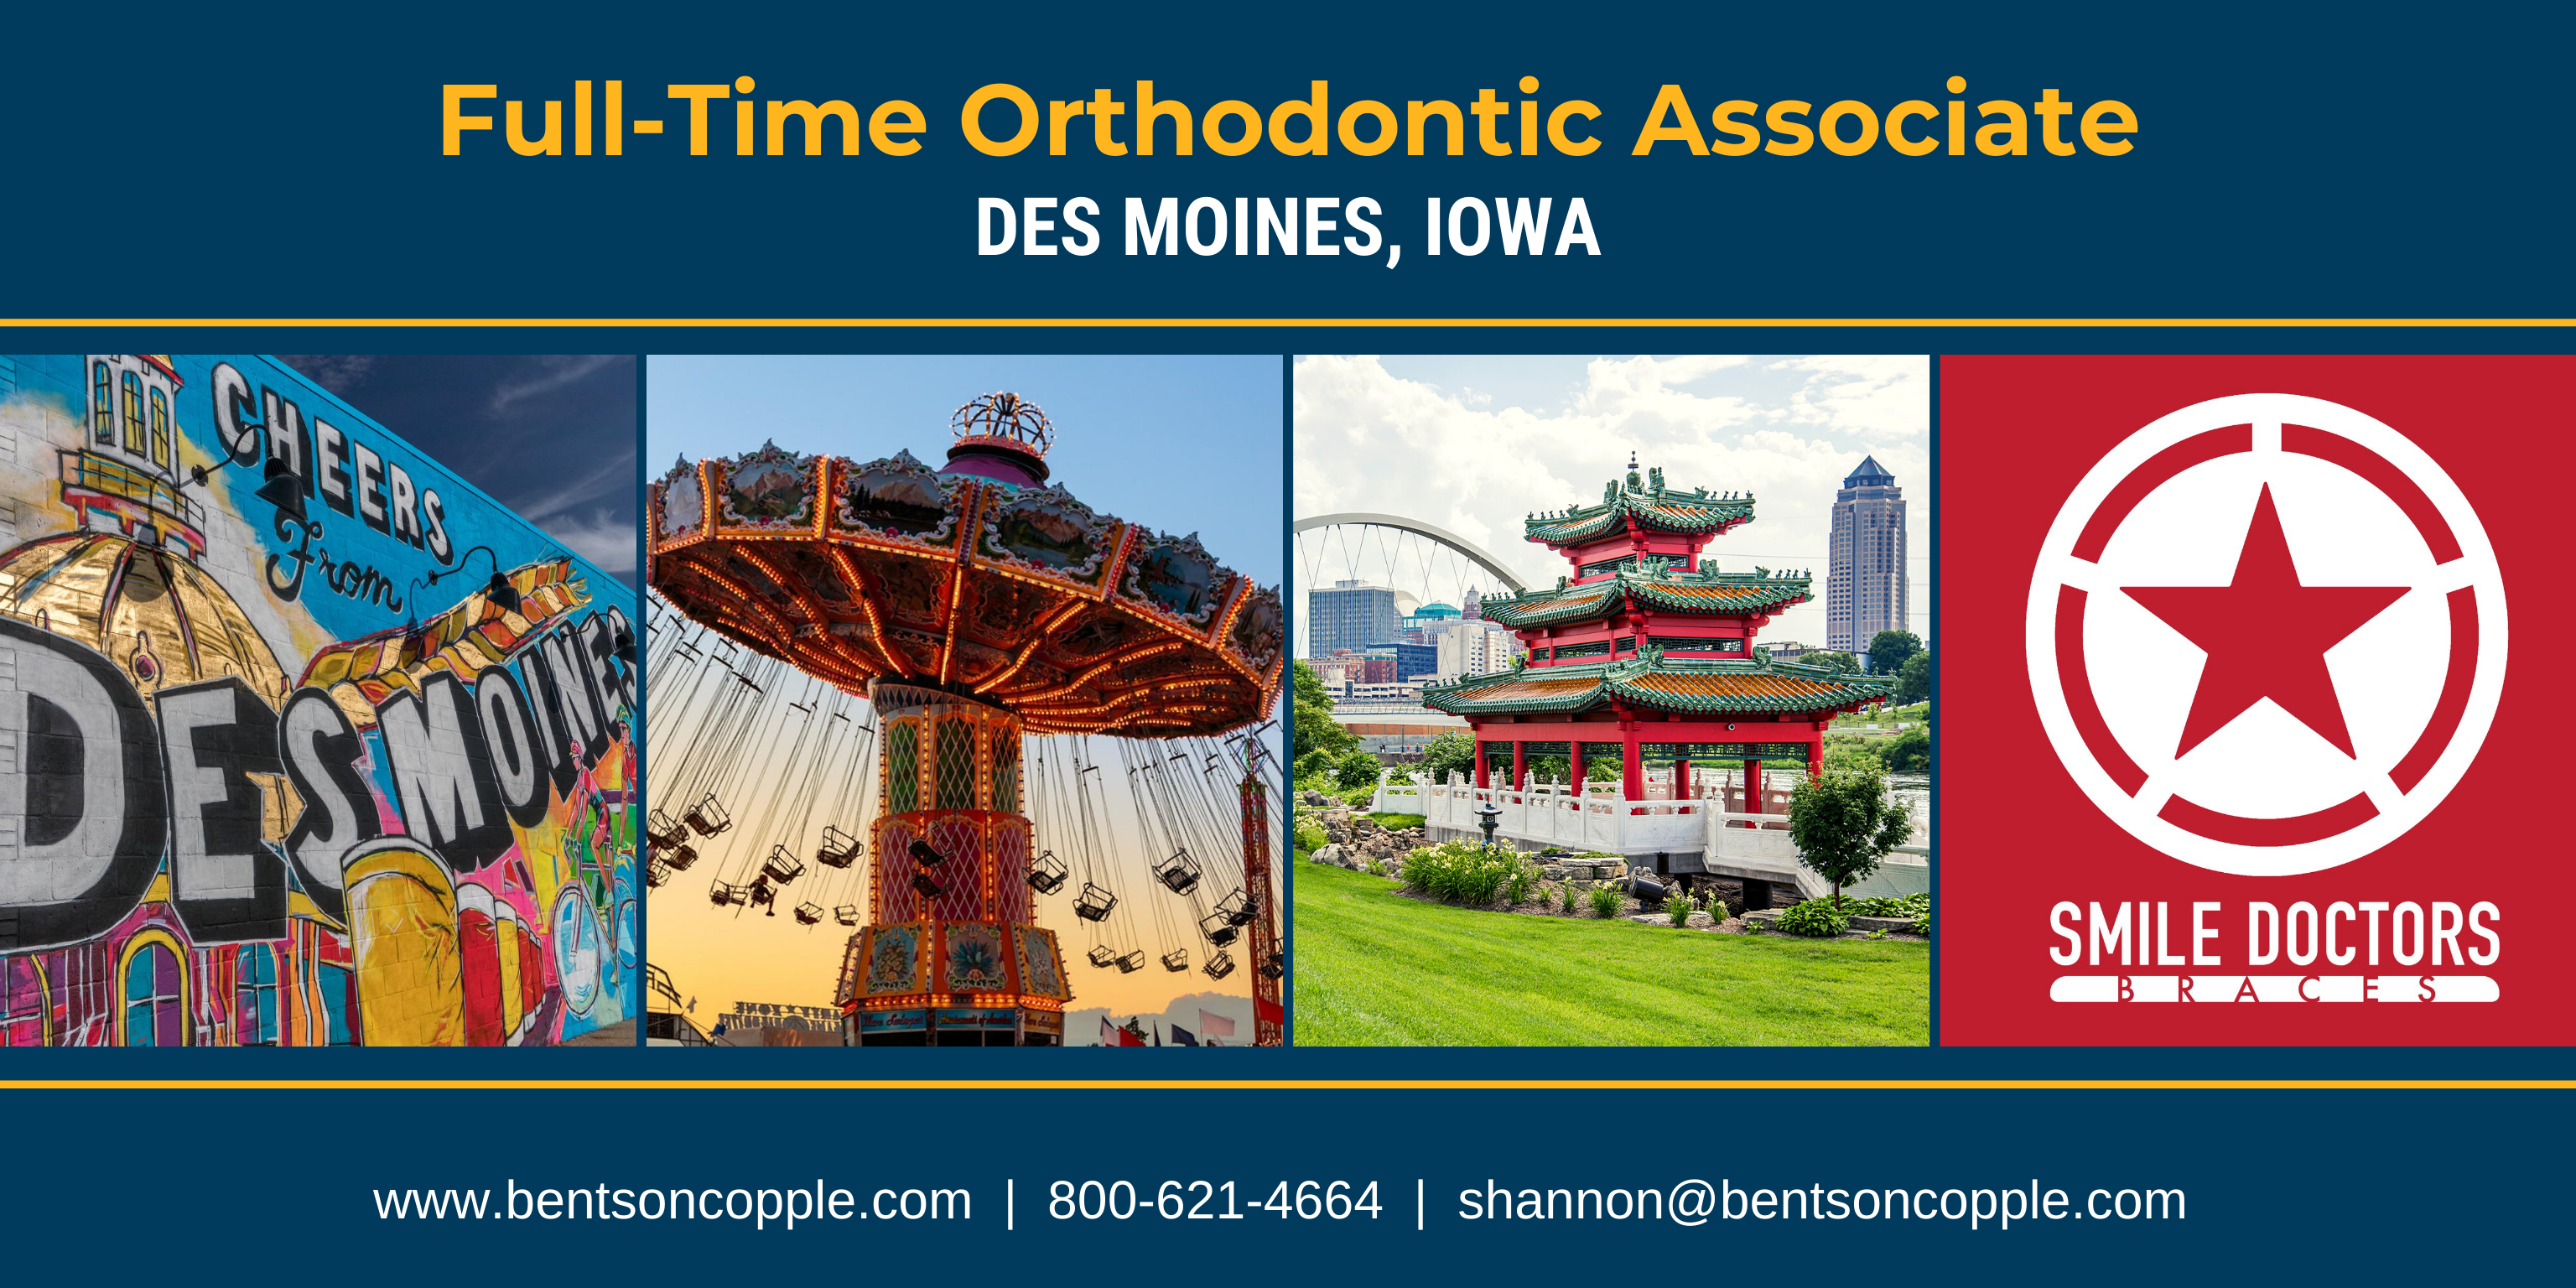 Full-Time Orthodontic Associate Needed in Duluth, Minnesota